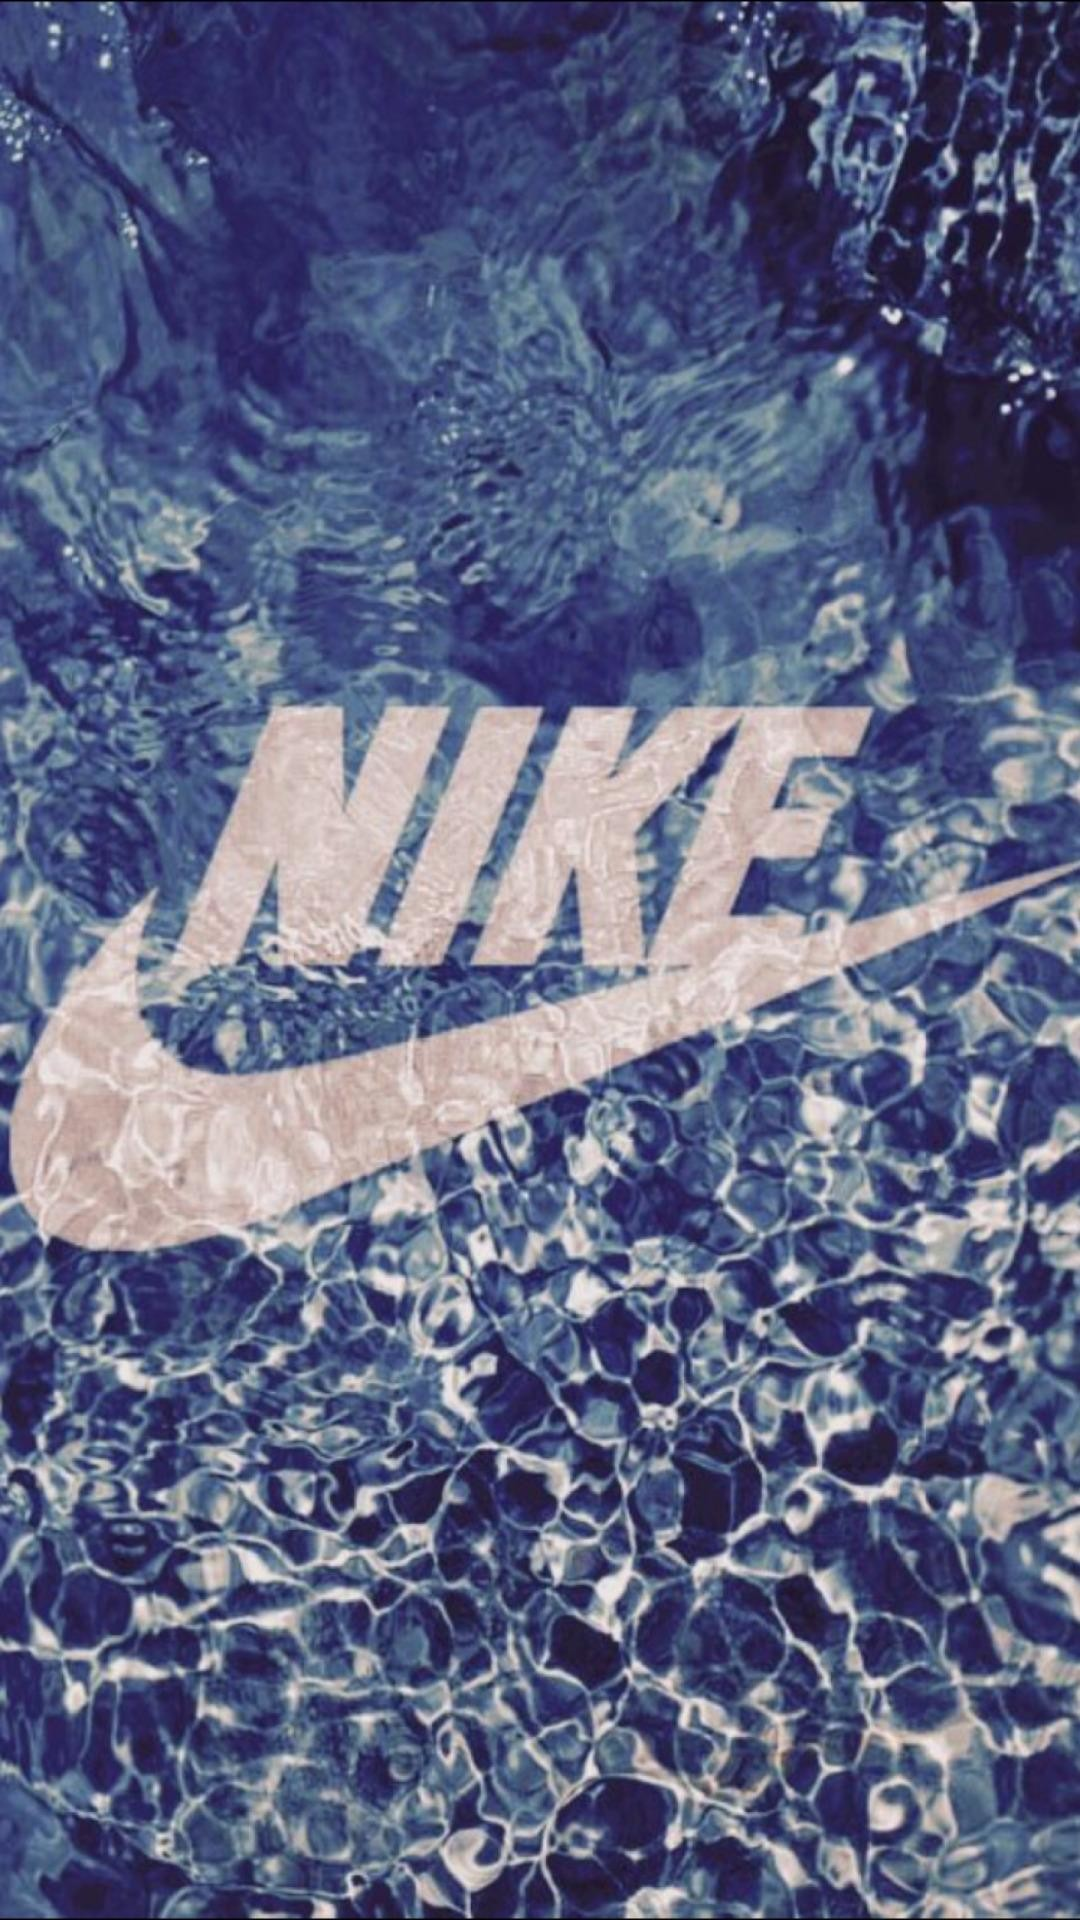 wallpaper.wiki-Nike-Background-for-Iphone-PIC-WPD002963